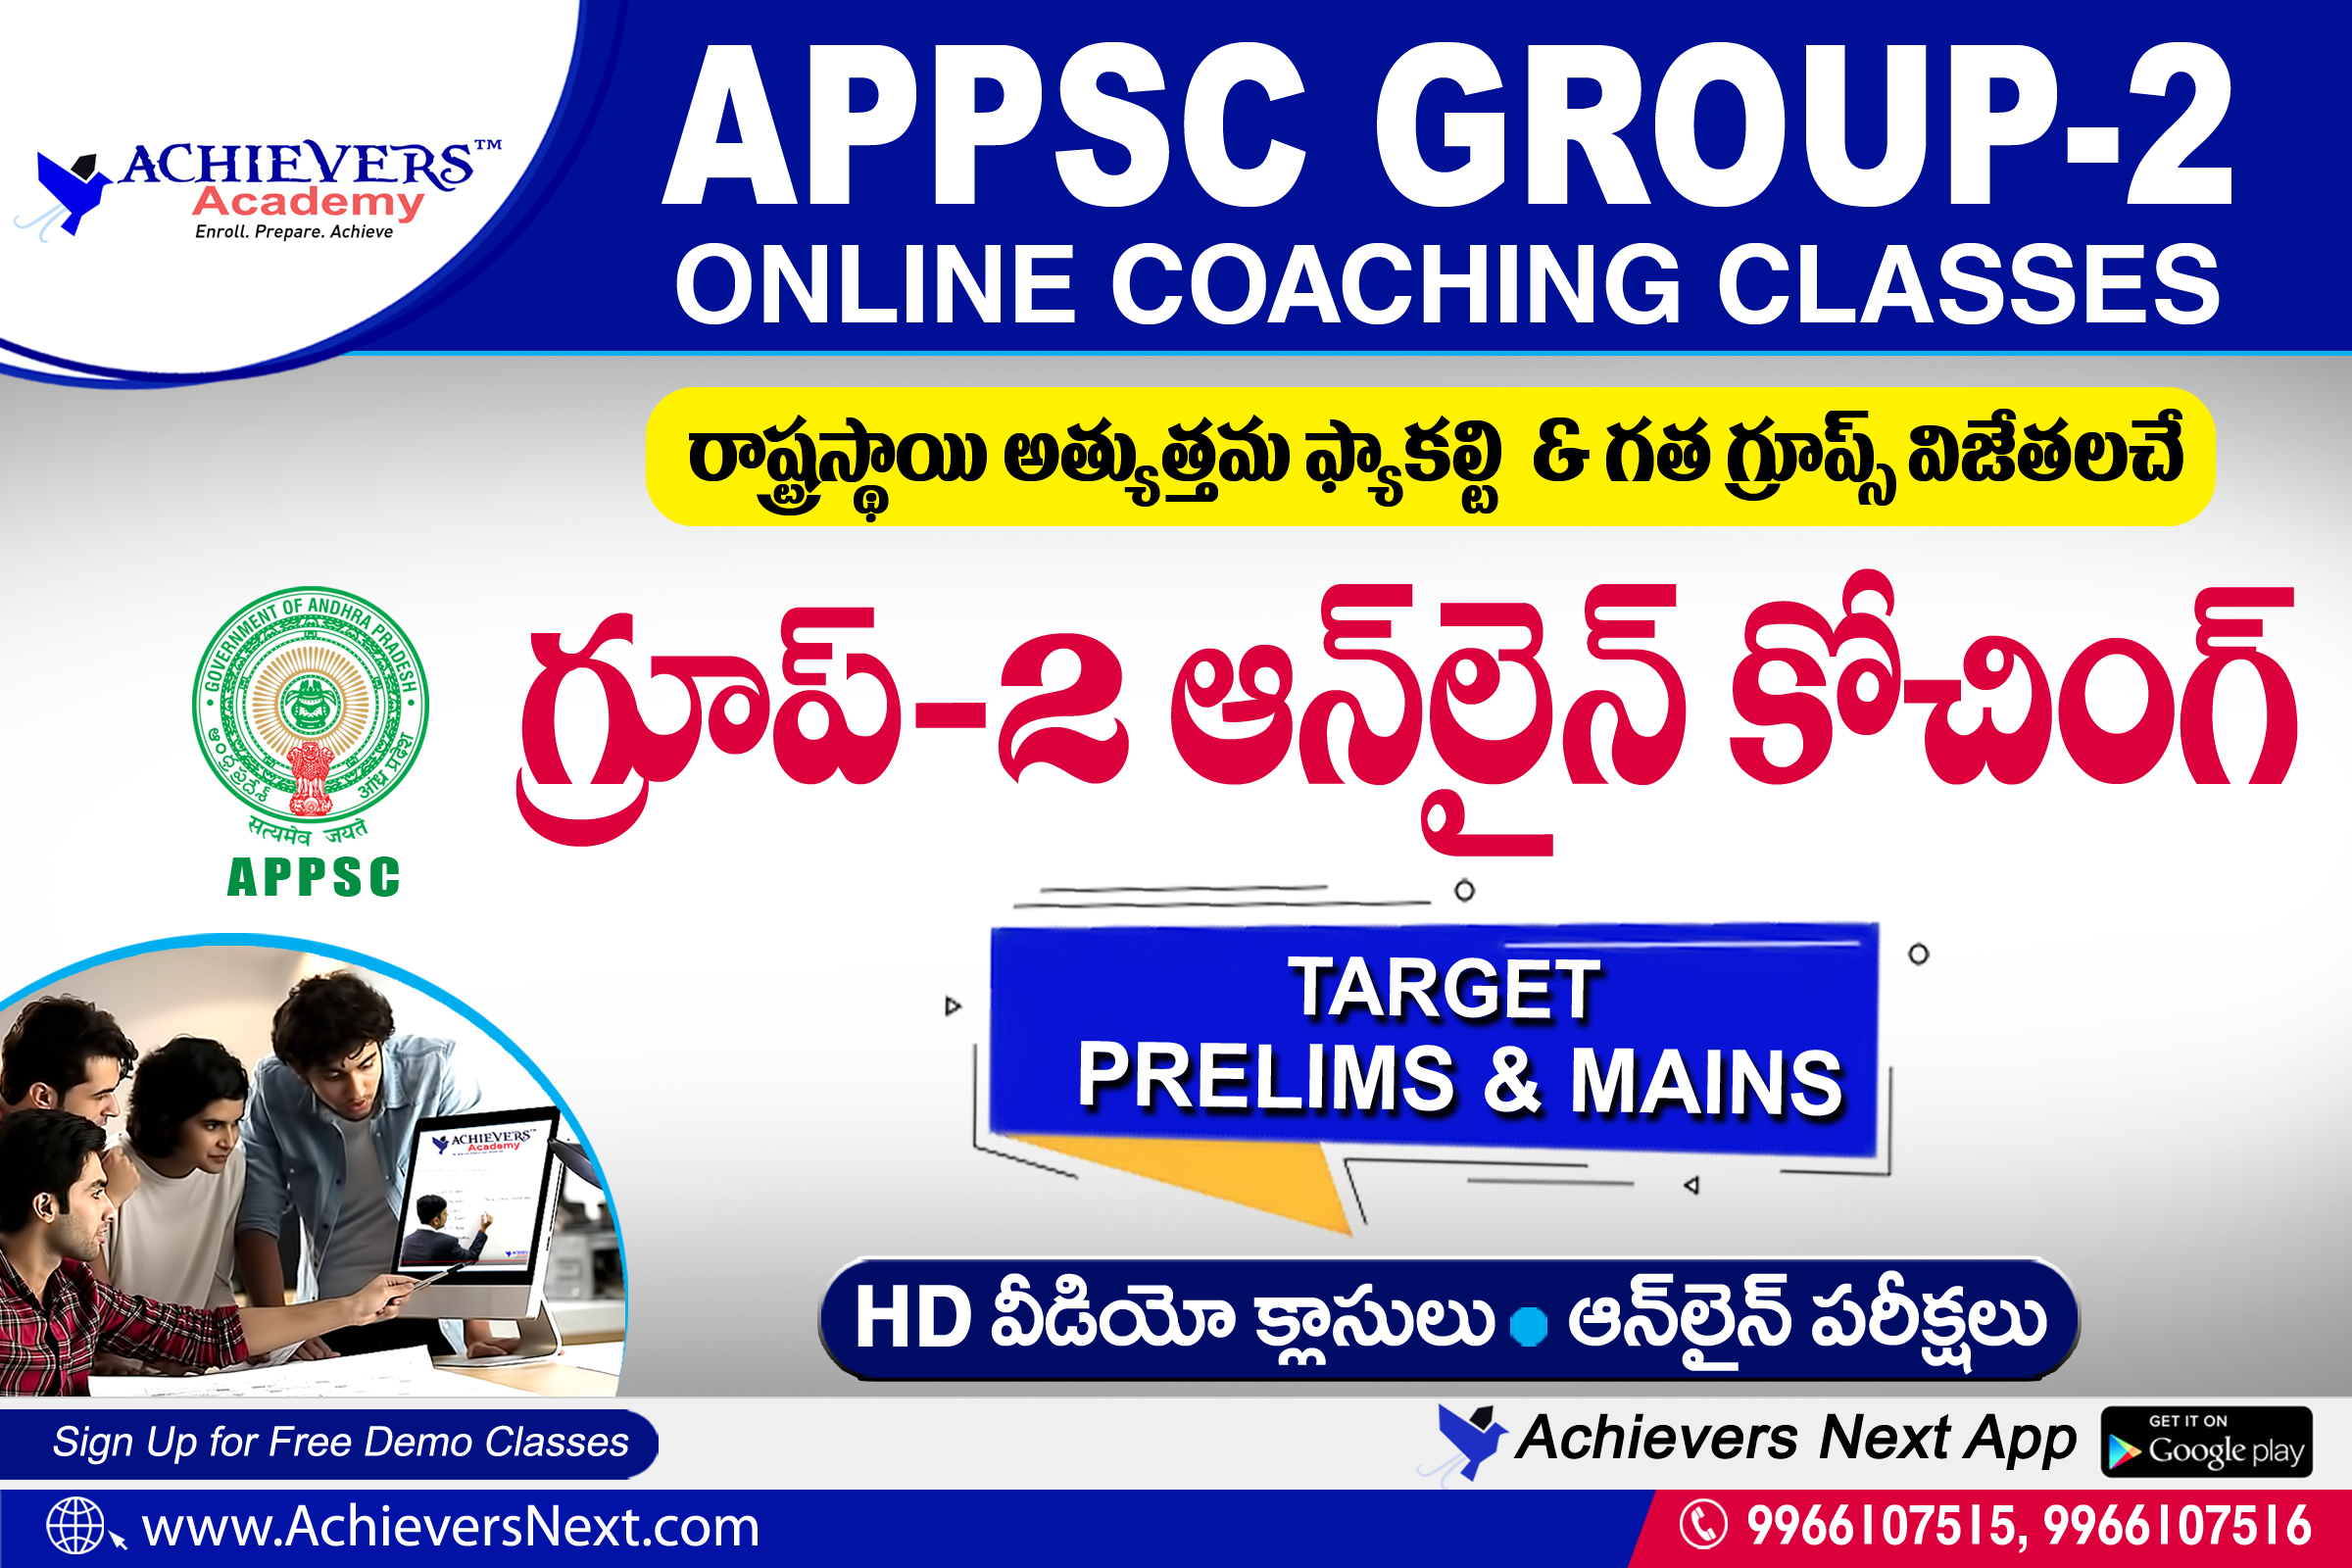 Best Online Coaching for APPSC Group 2